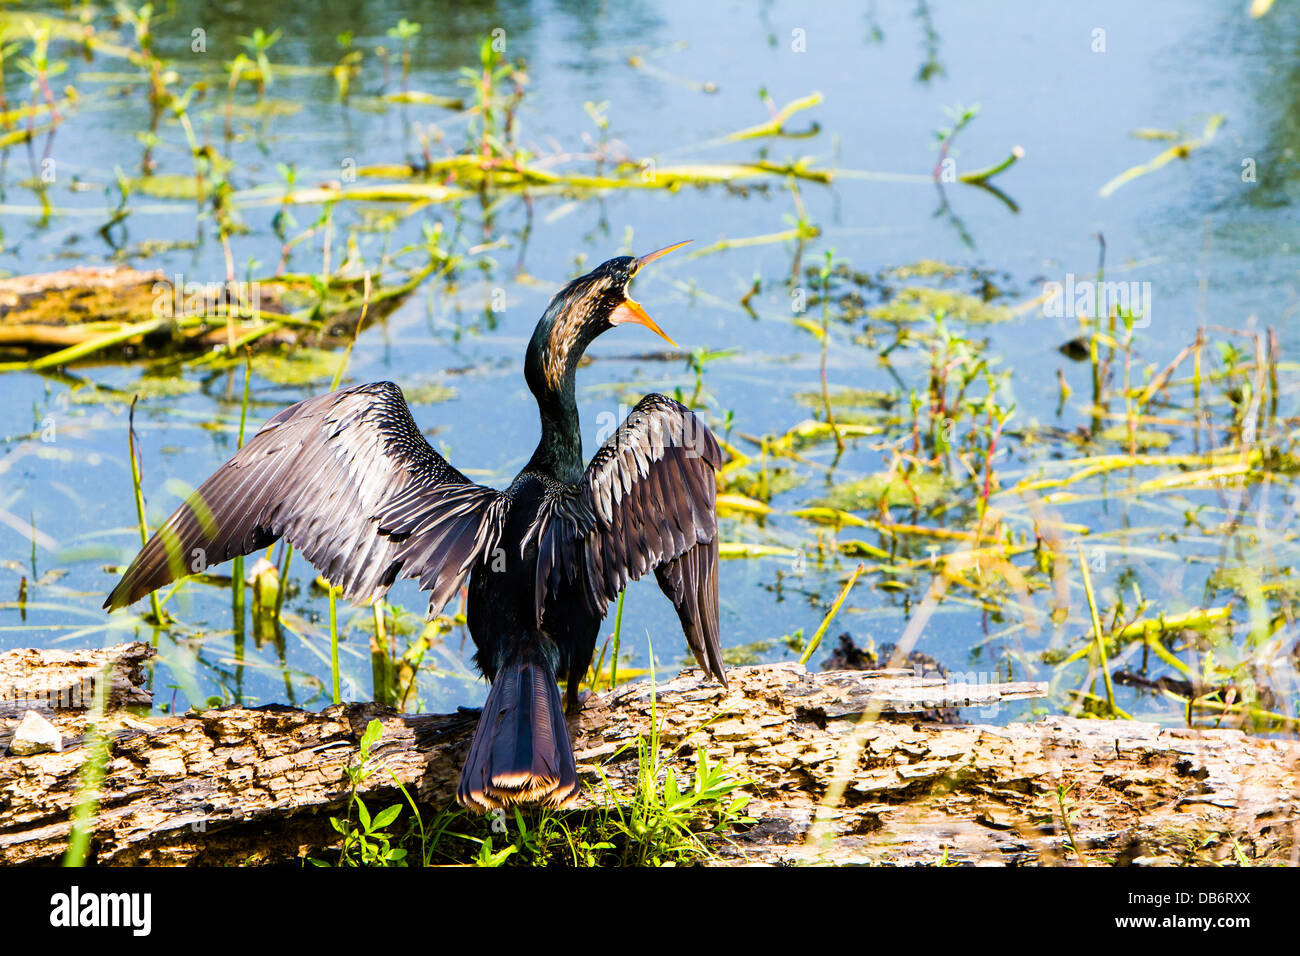 A black water bird, Anhinga, was drying its wings -their wings are not water proofed - at Brazo Bend State Park - Stock Image